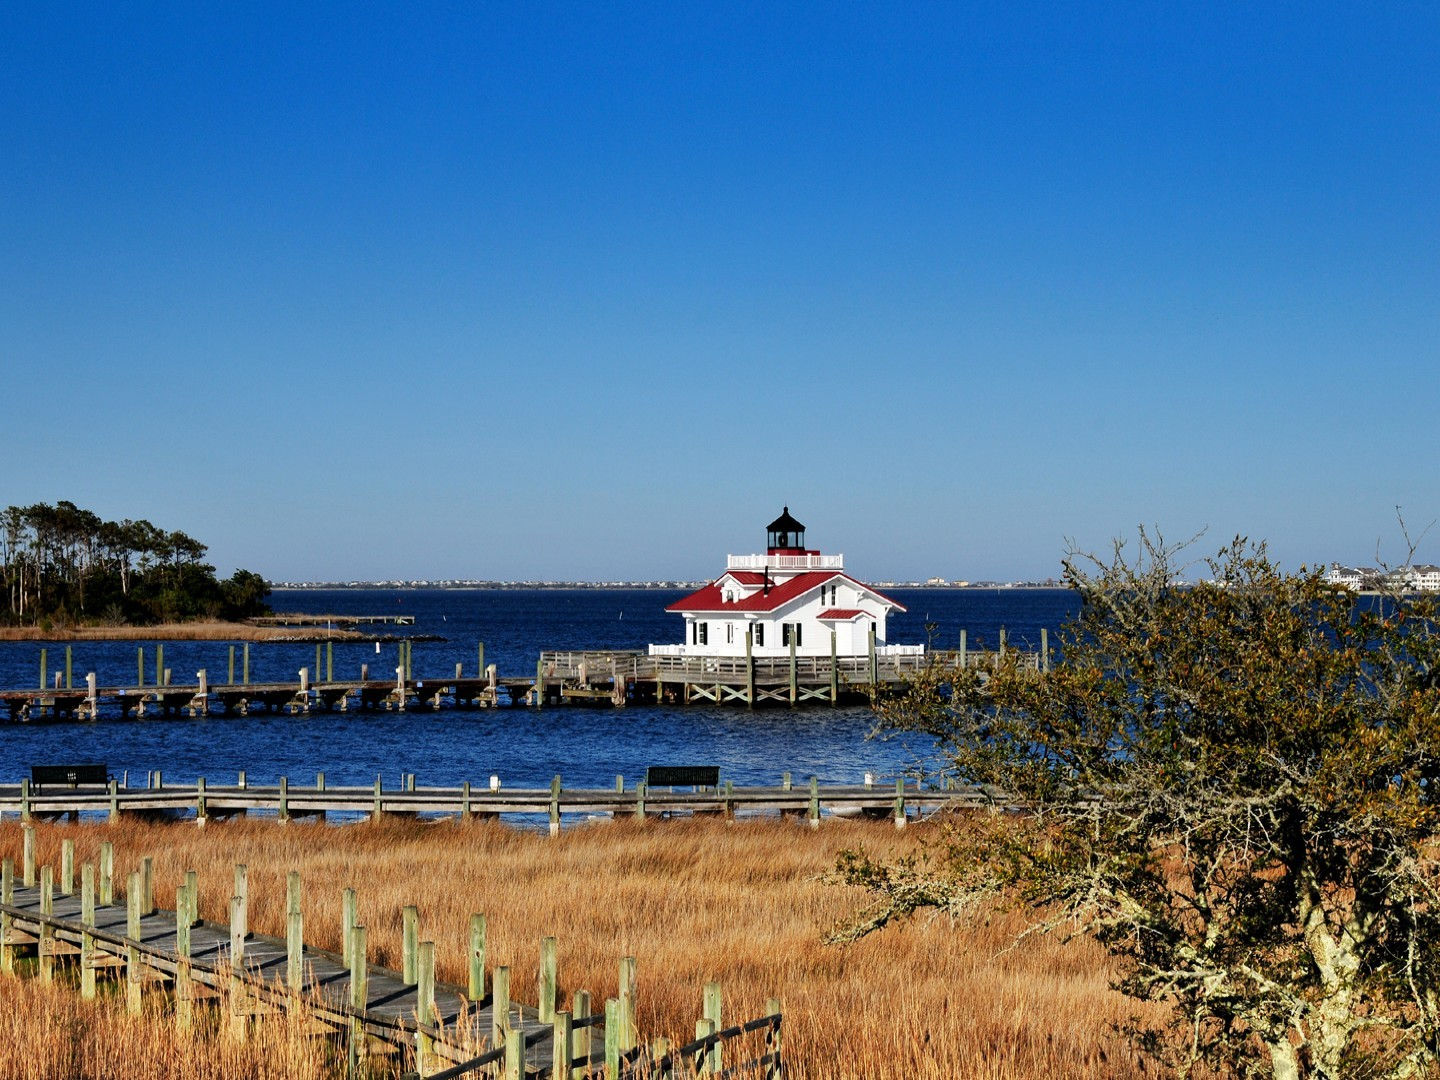 A bridge over a body of water at The Roanoke Island Inn.